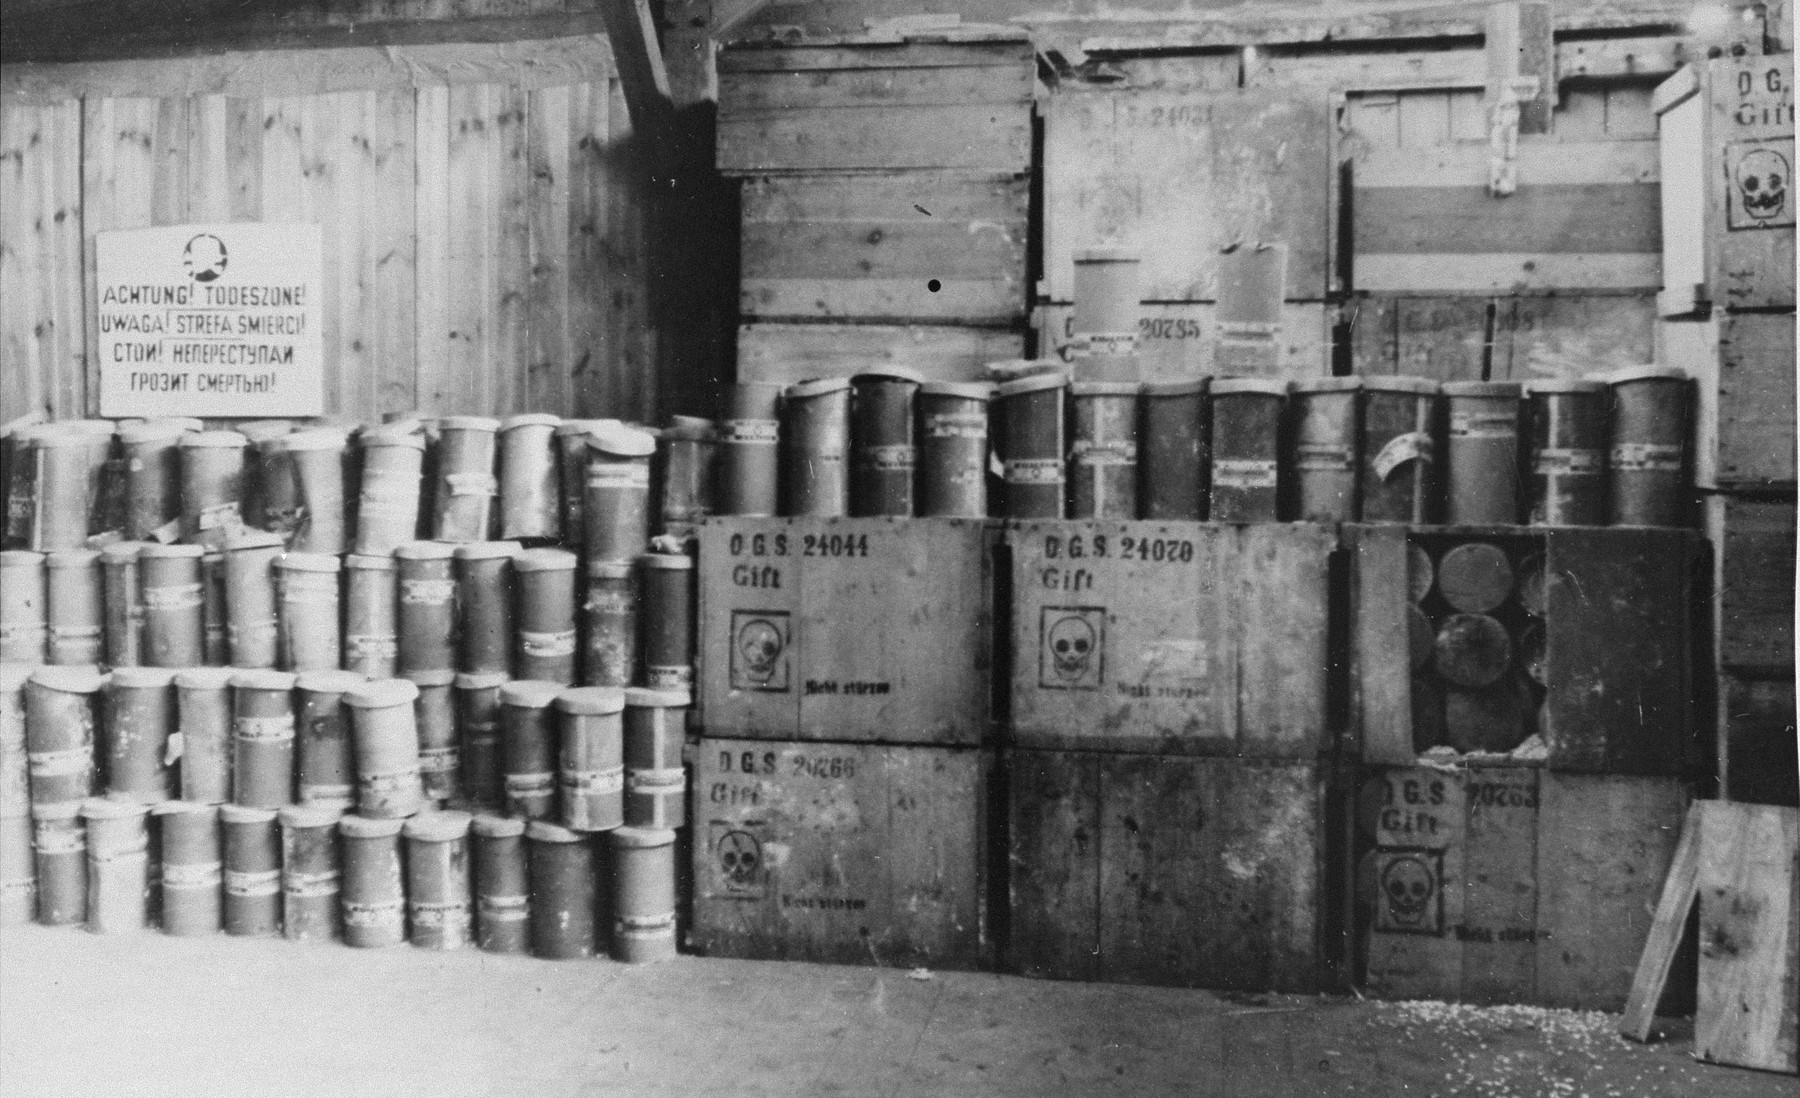 A warehouse filled with containers of Zyklon B (poison gas pellets) at the Majdanek death camp.